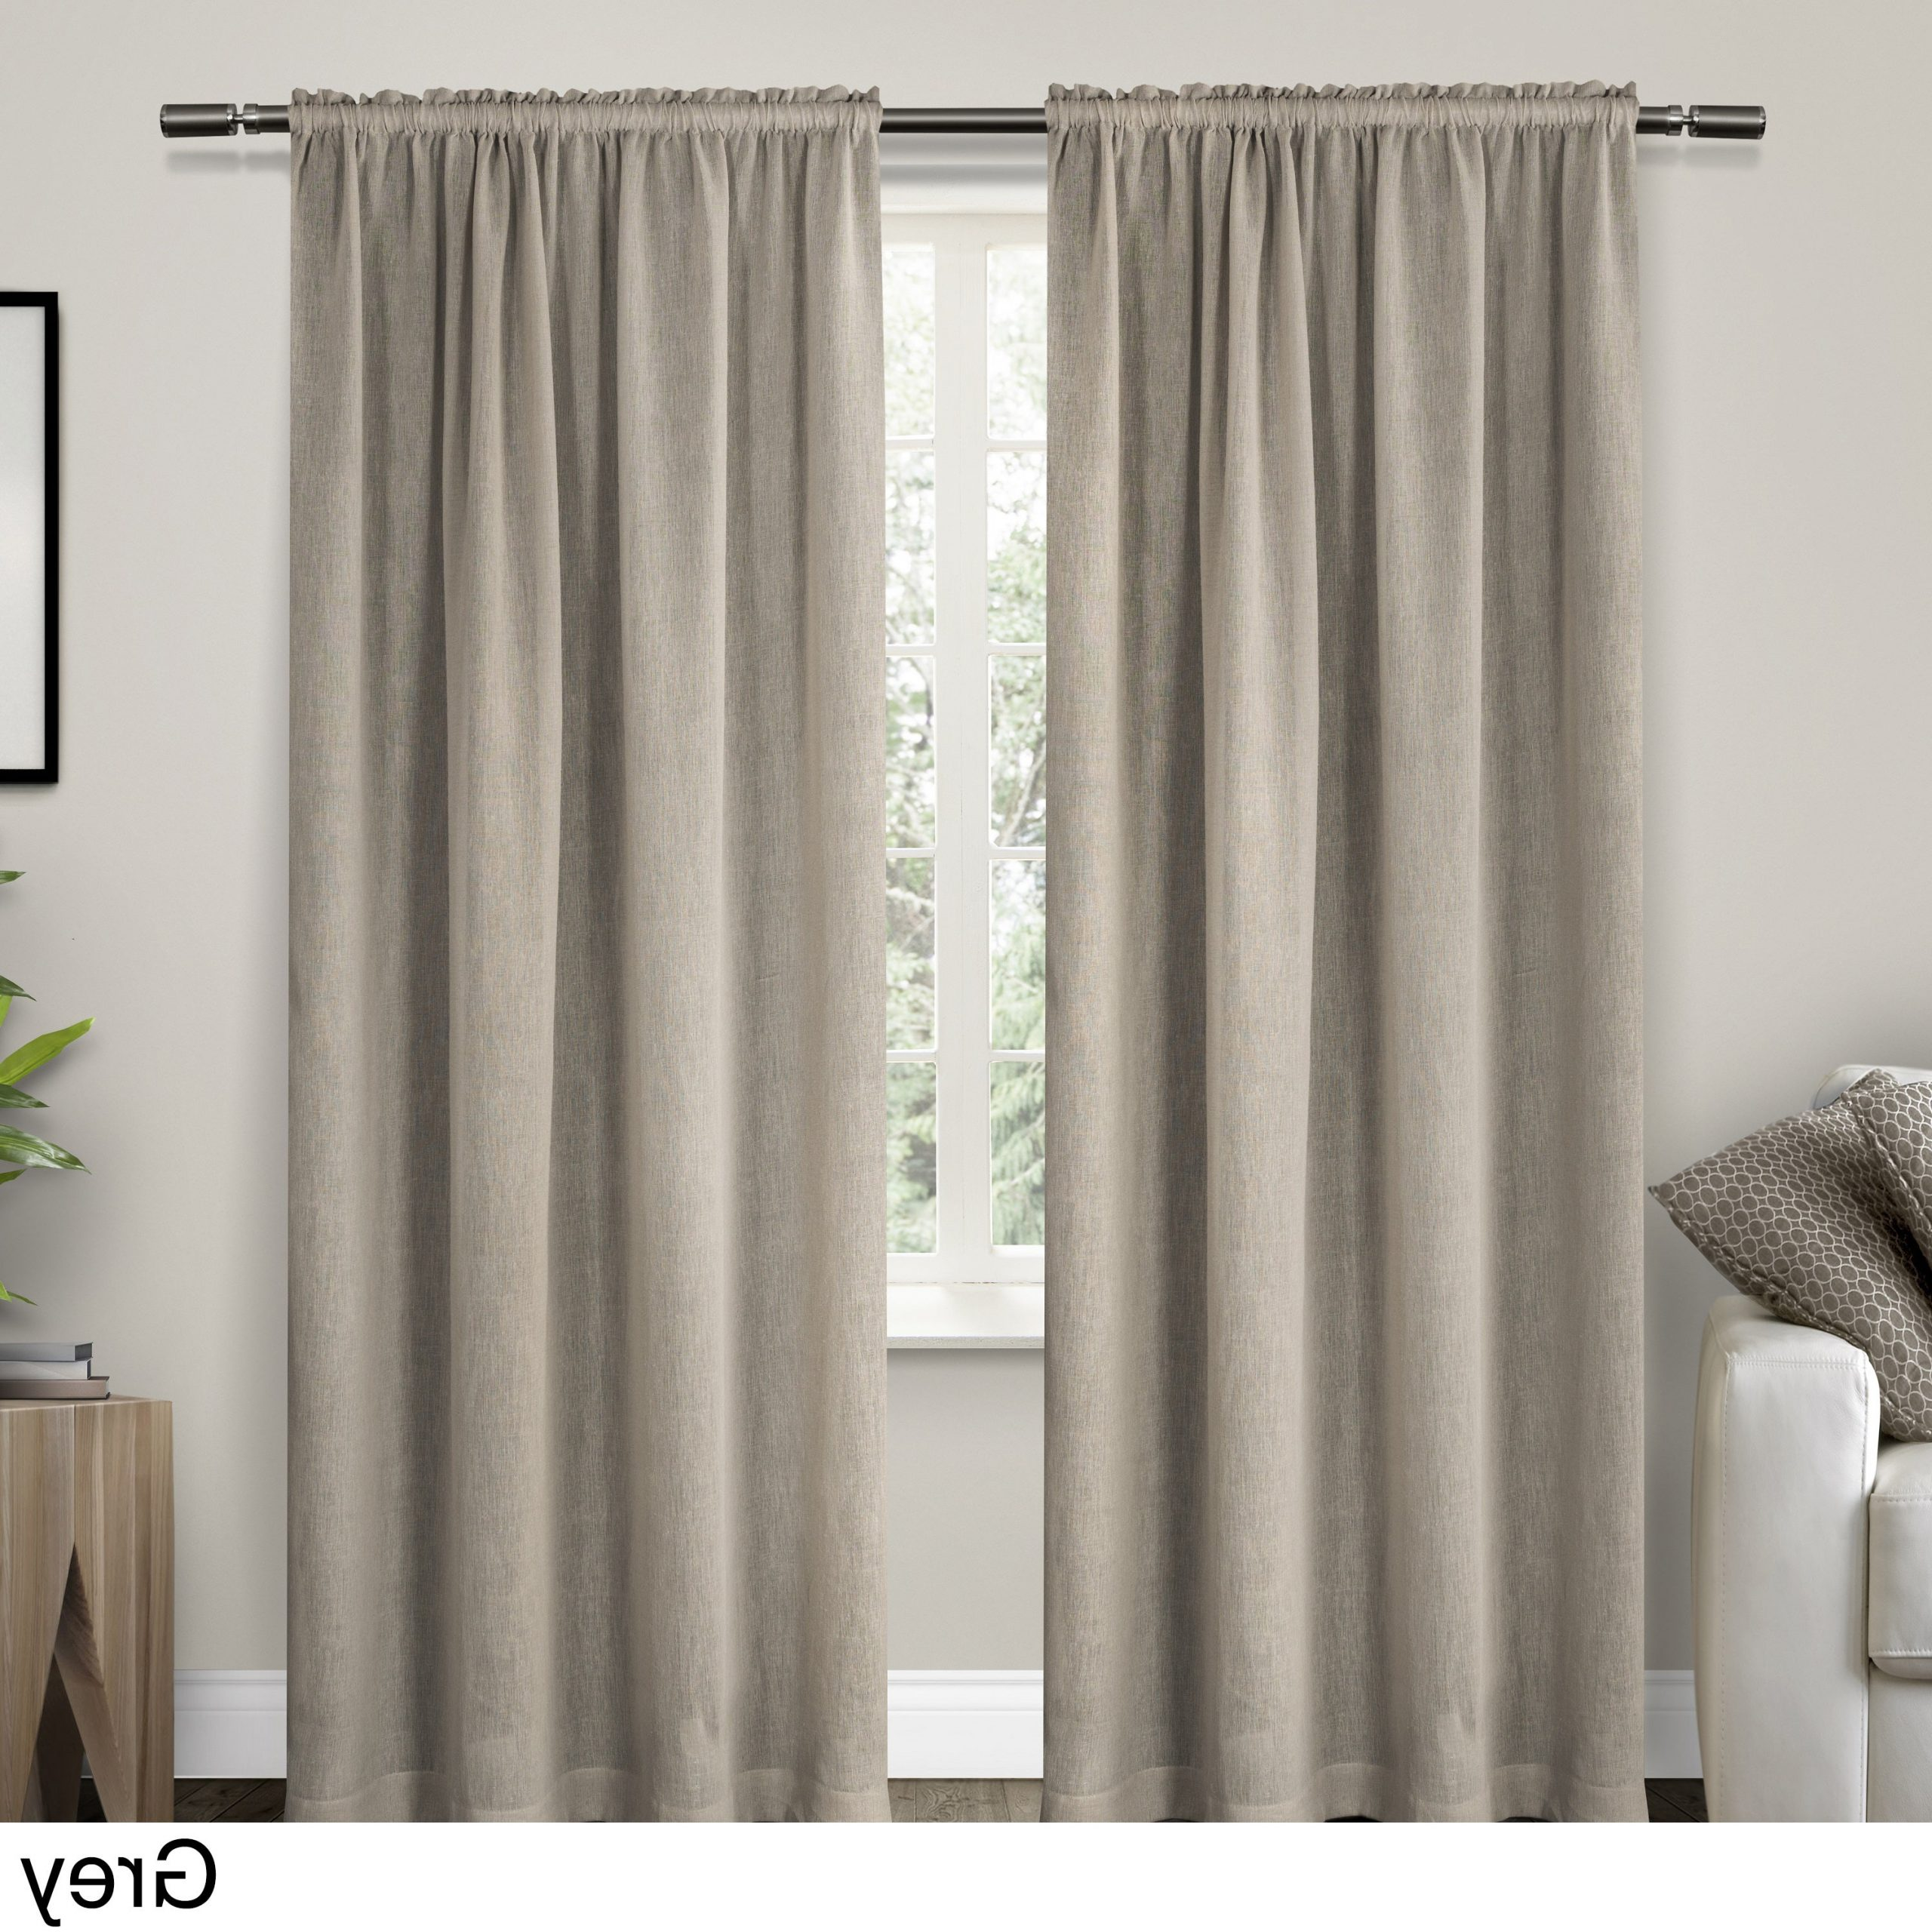 Belgian Sheer Window Curtain Panel Pairs With Rod Pocket Inside Well Known Ati Home Belgian Sheer Window Curtain Panel Pair With Rod Pocket (View 1 of 20)